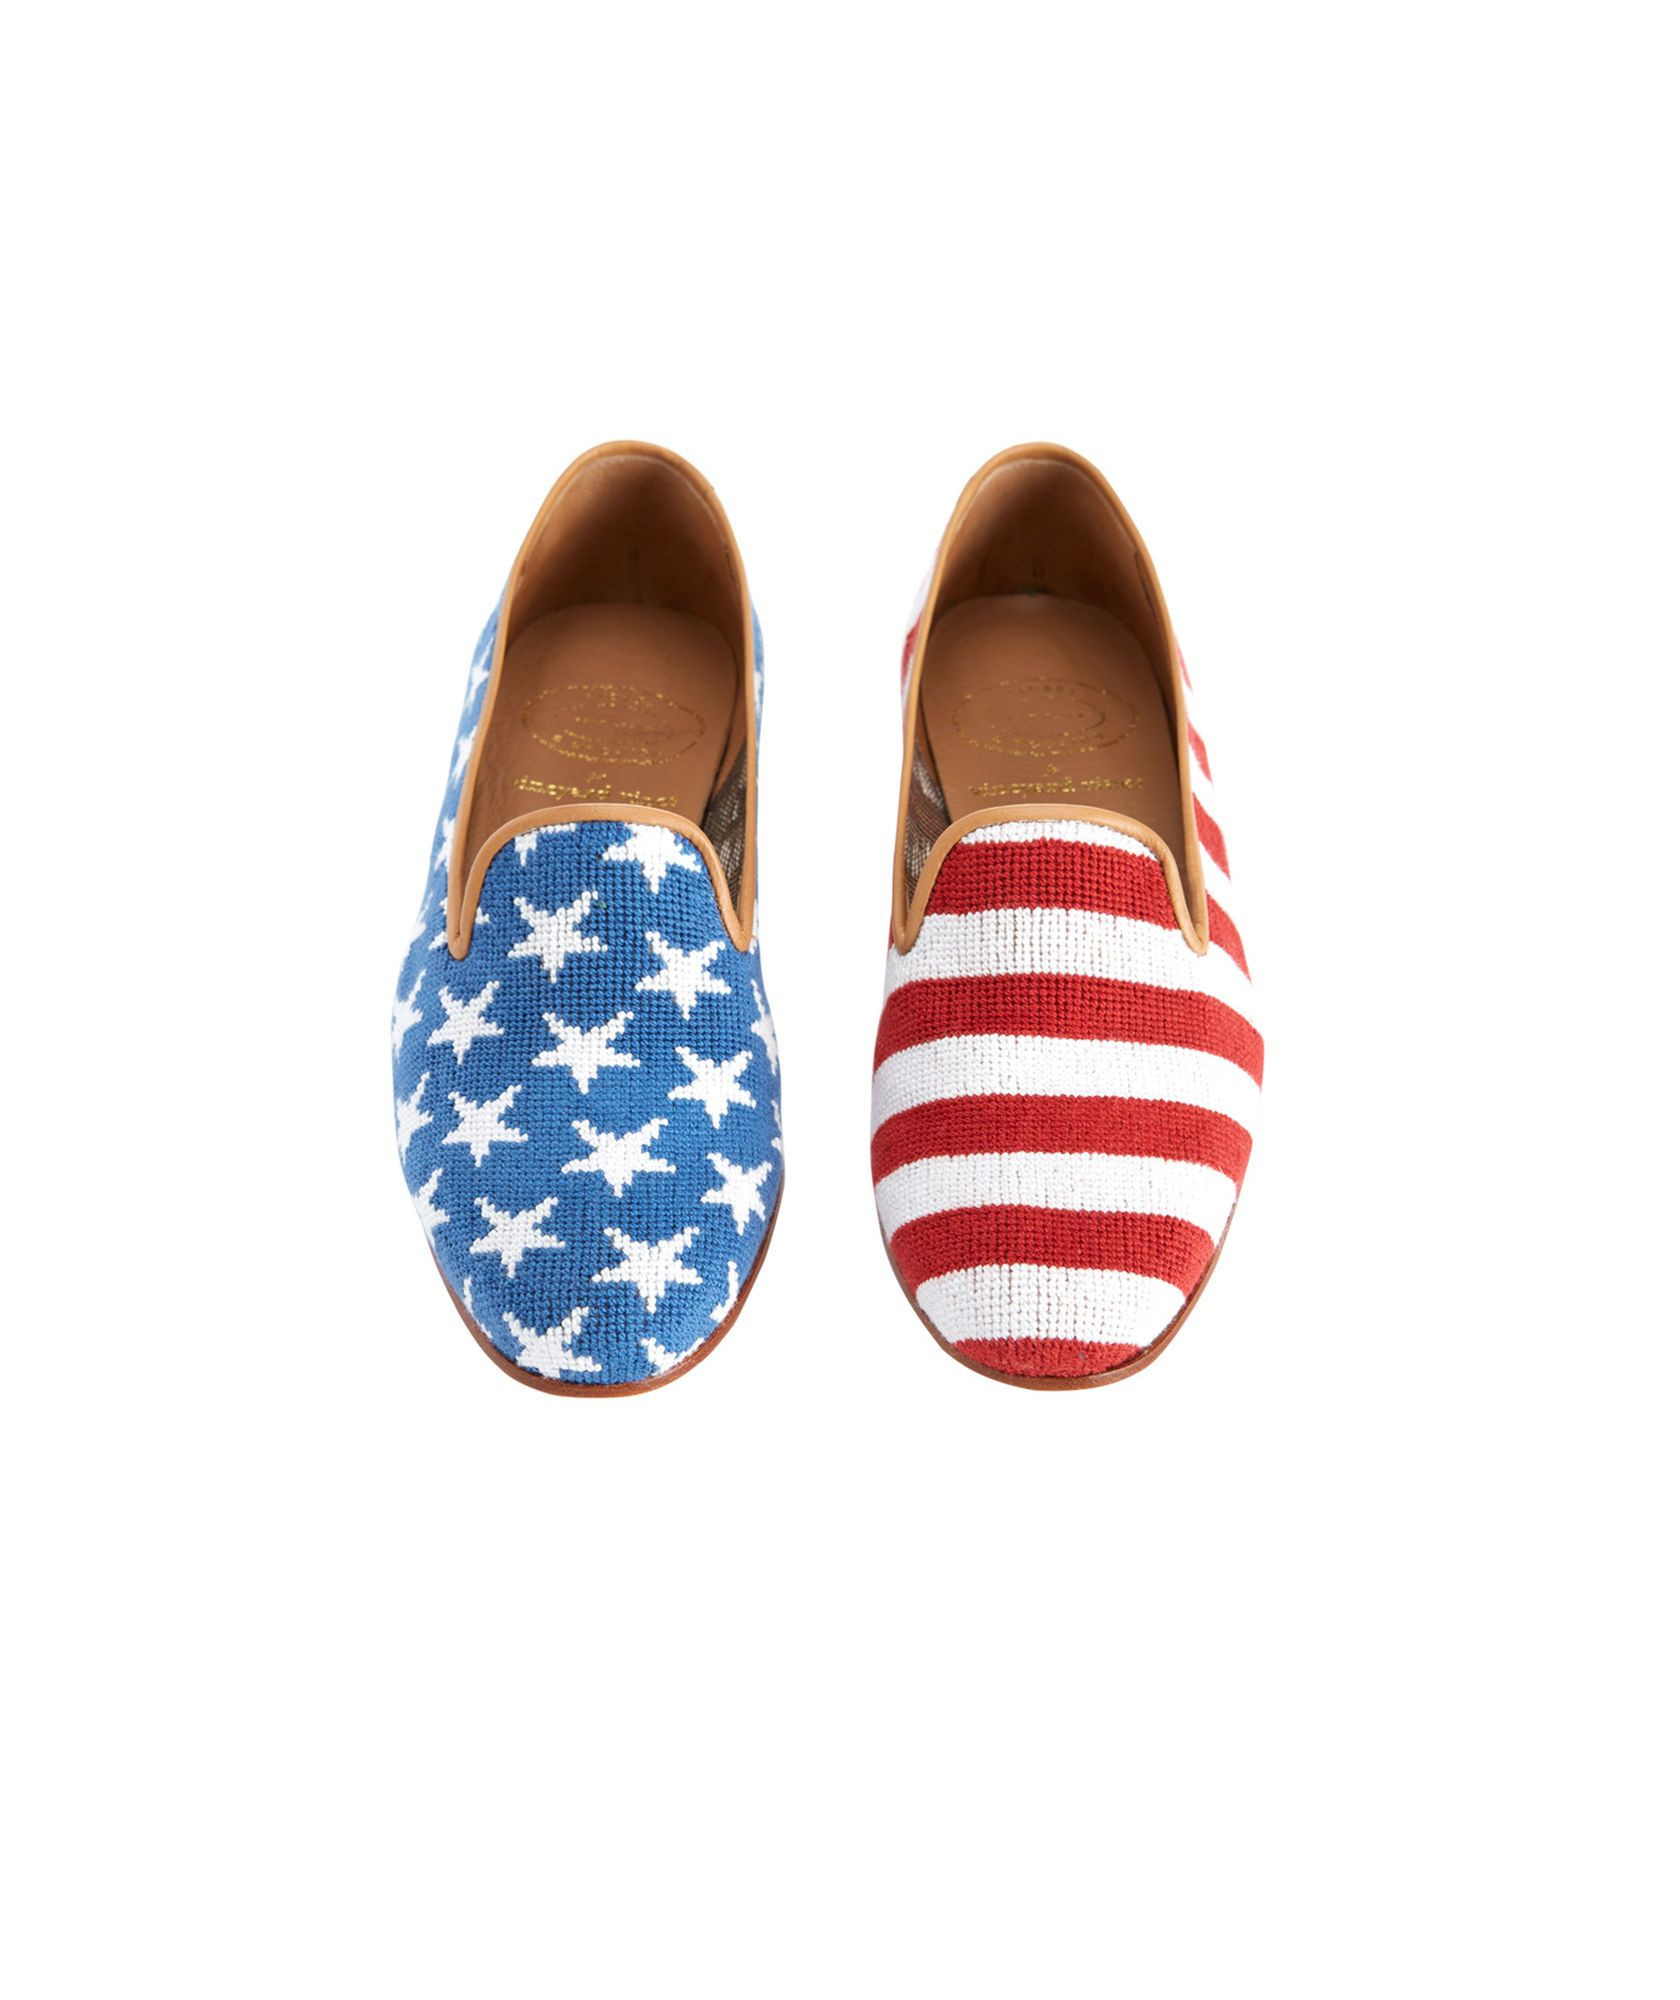 Stubbs & Wootton Striped Round-Toe Loafers outlet locations for sale A8DVRebA